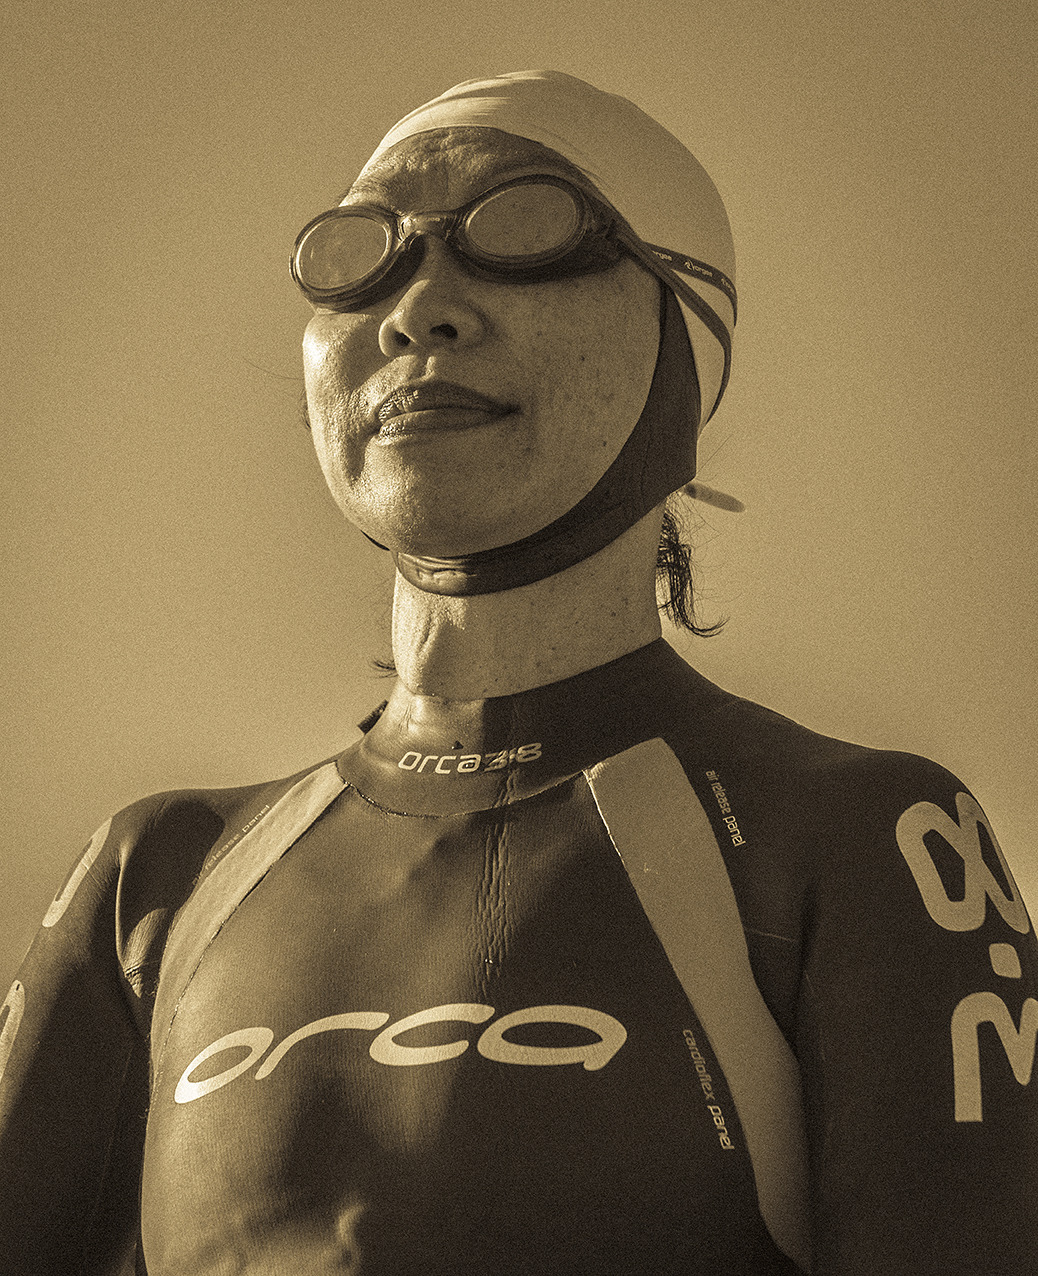 Female Triathlete, Mission Bay, New Zealand